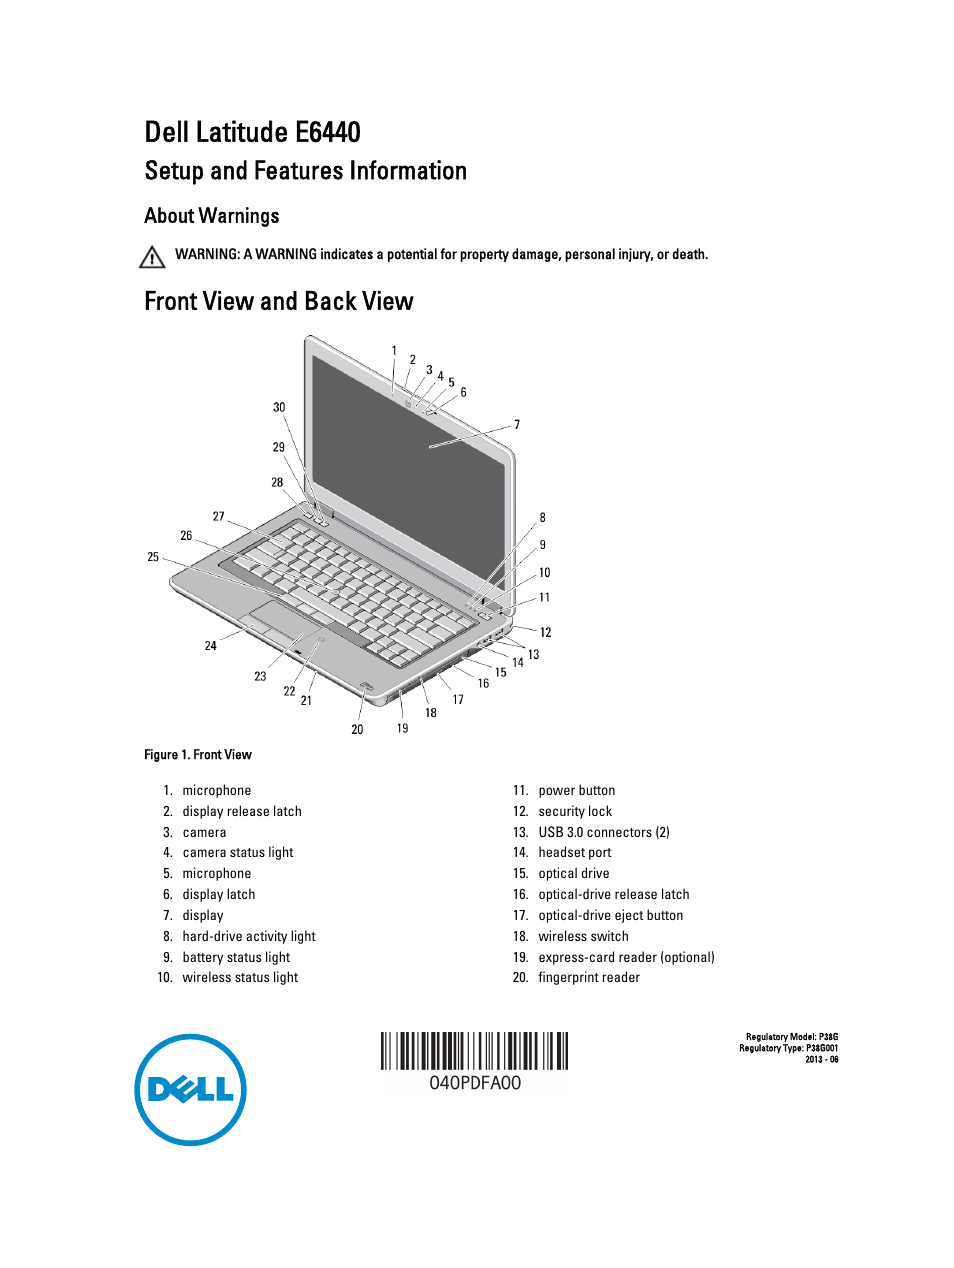 Dell Latitude E6440 (Late 2013) User Manual | 6 pages